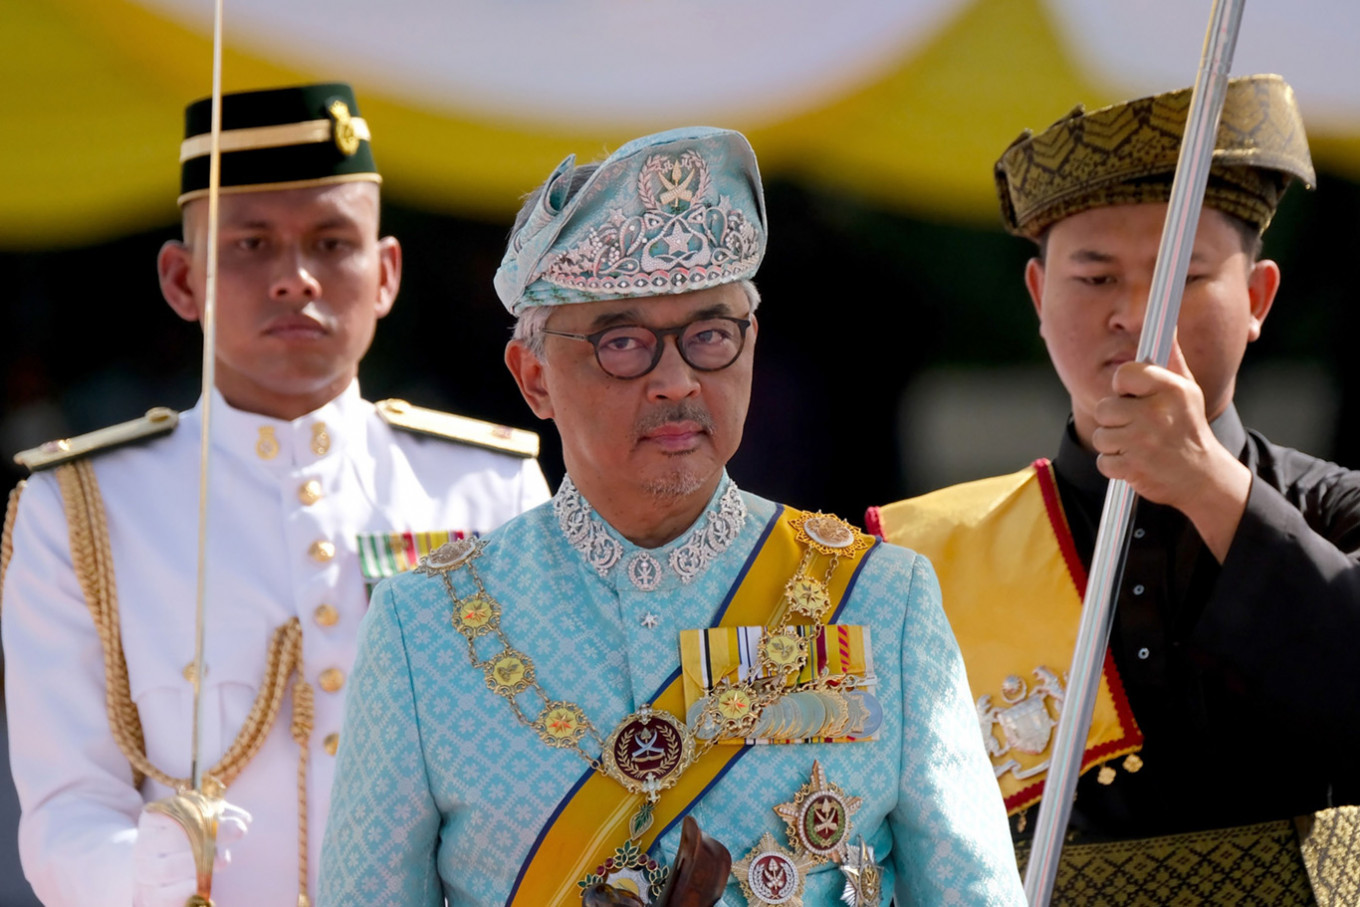 Royal Families From Asia And 10 Fascinating Facts You Probably Never Knew About Them